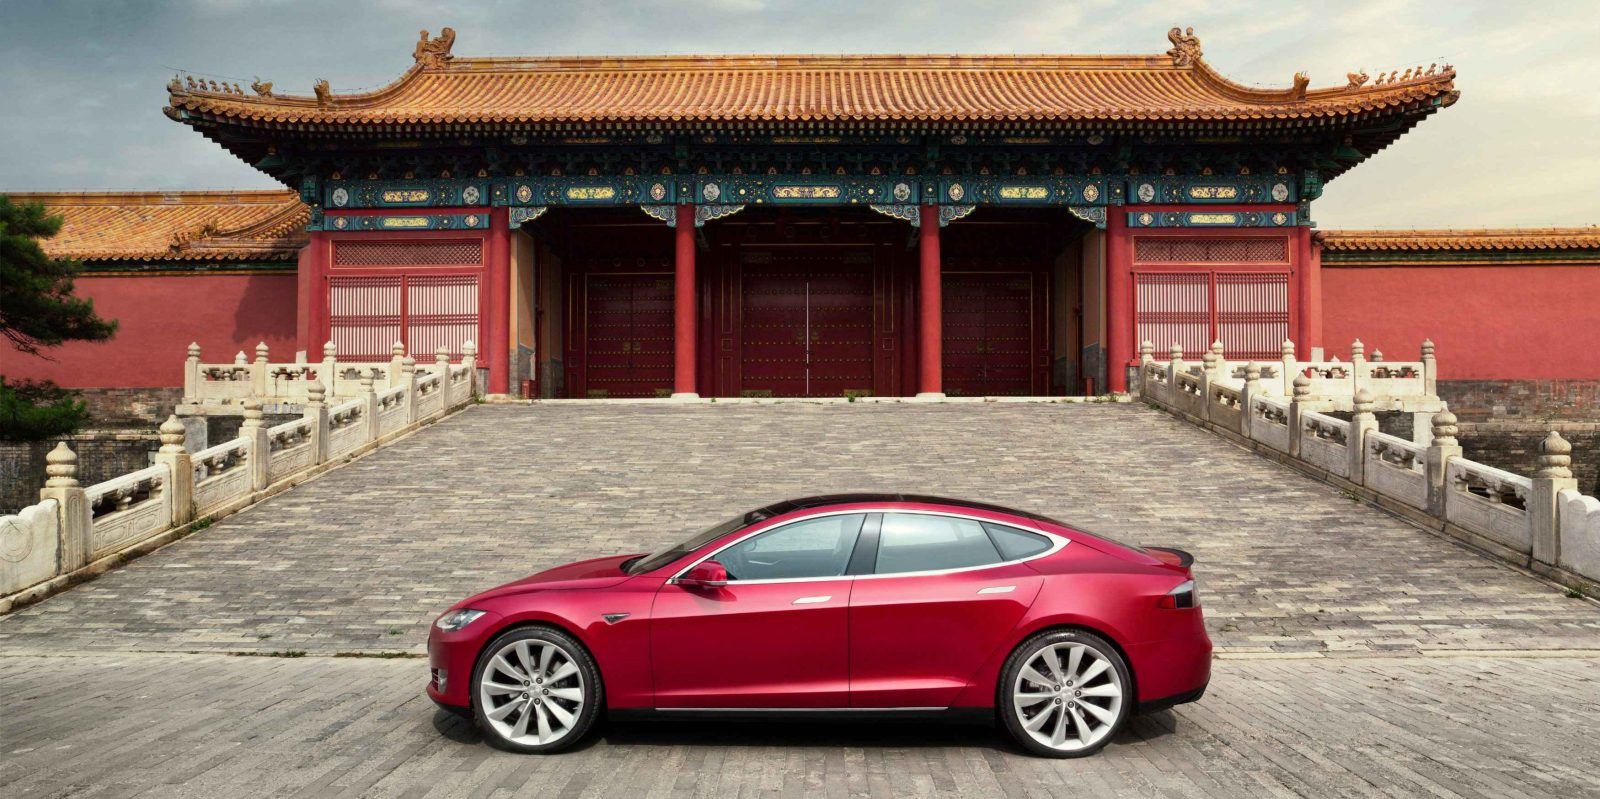 Tesla Increases Price Of Model Odel X By Over 20 000 In China Due To New Trade War Tariffs